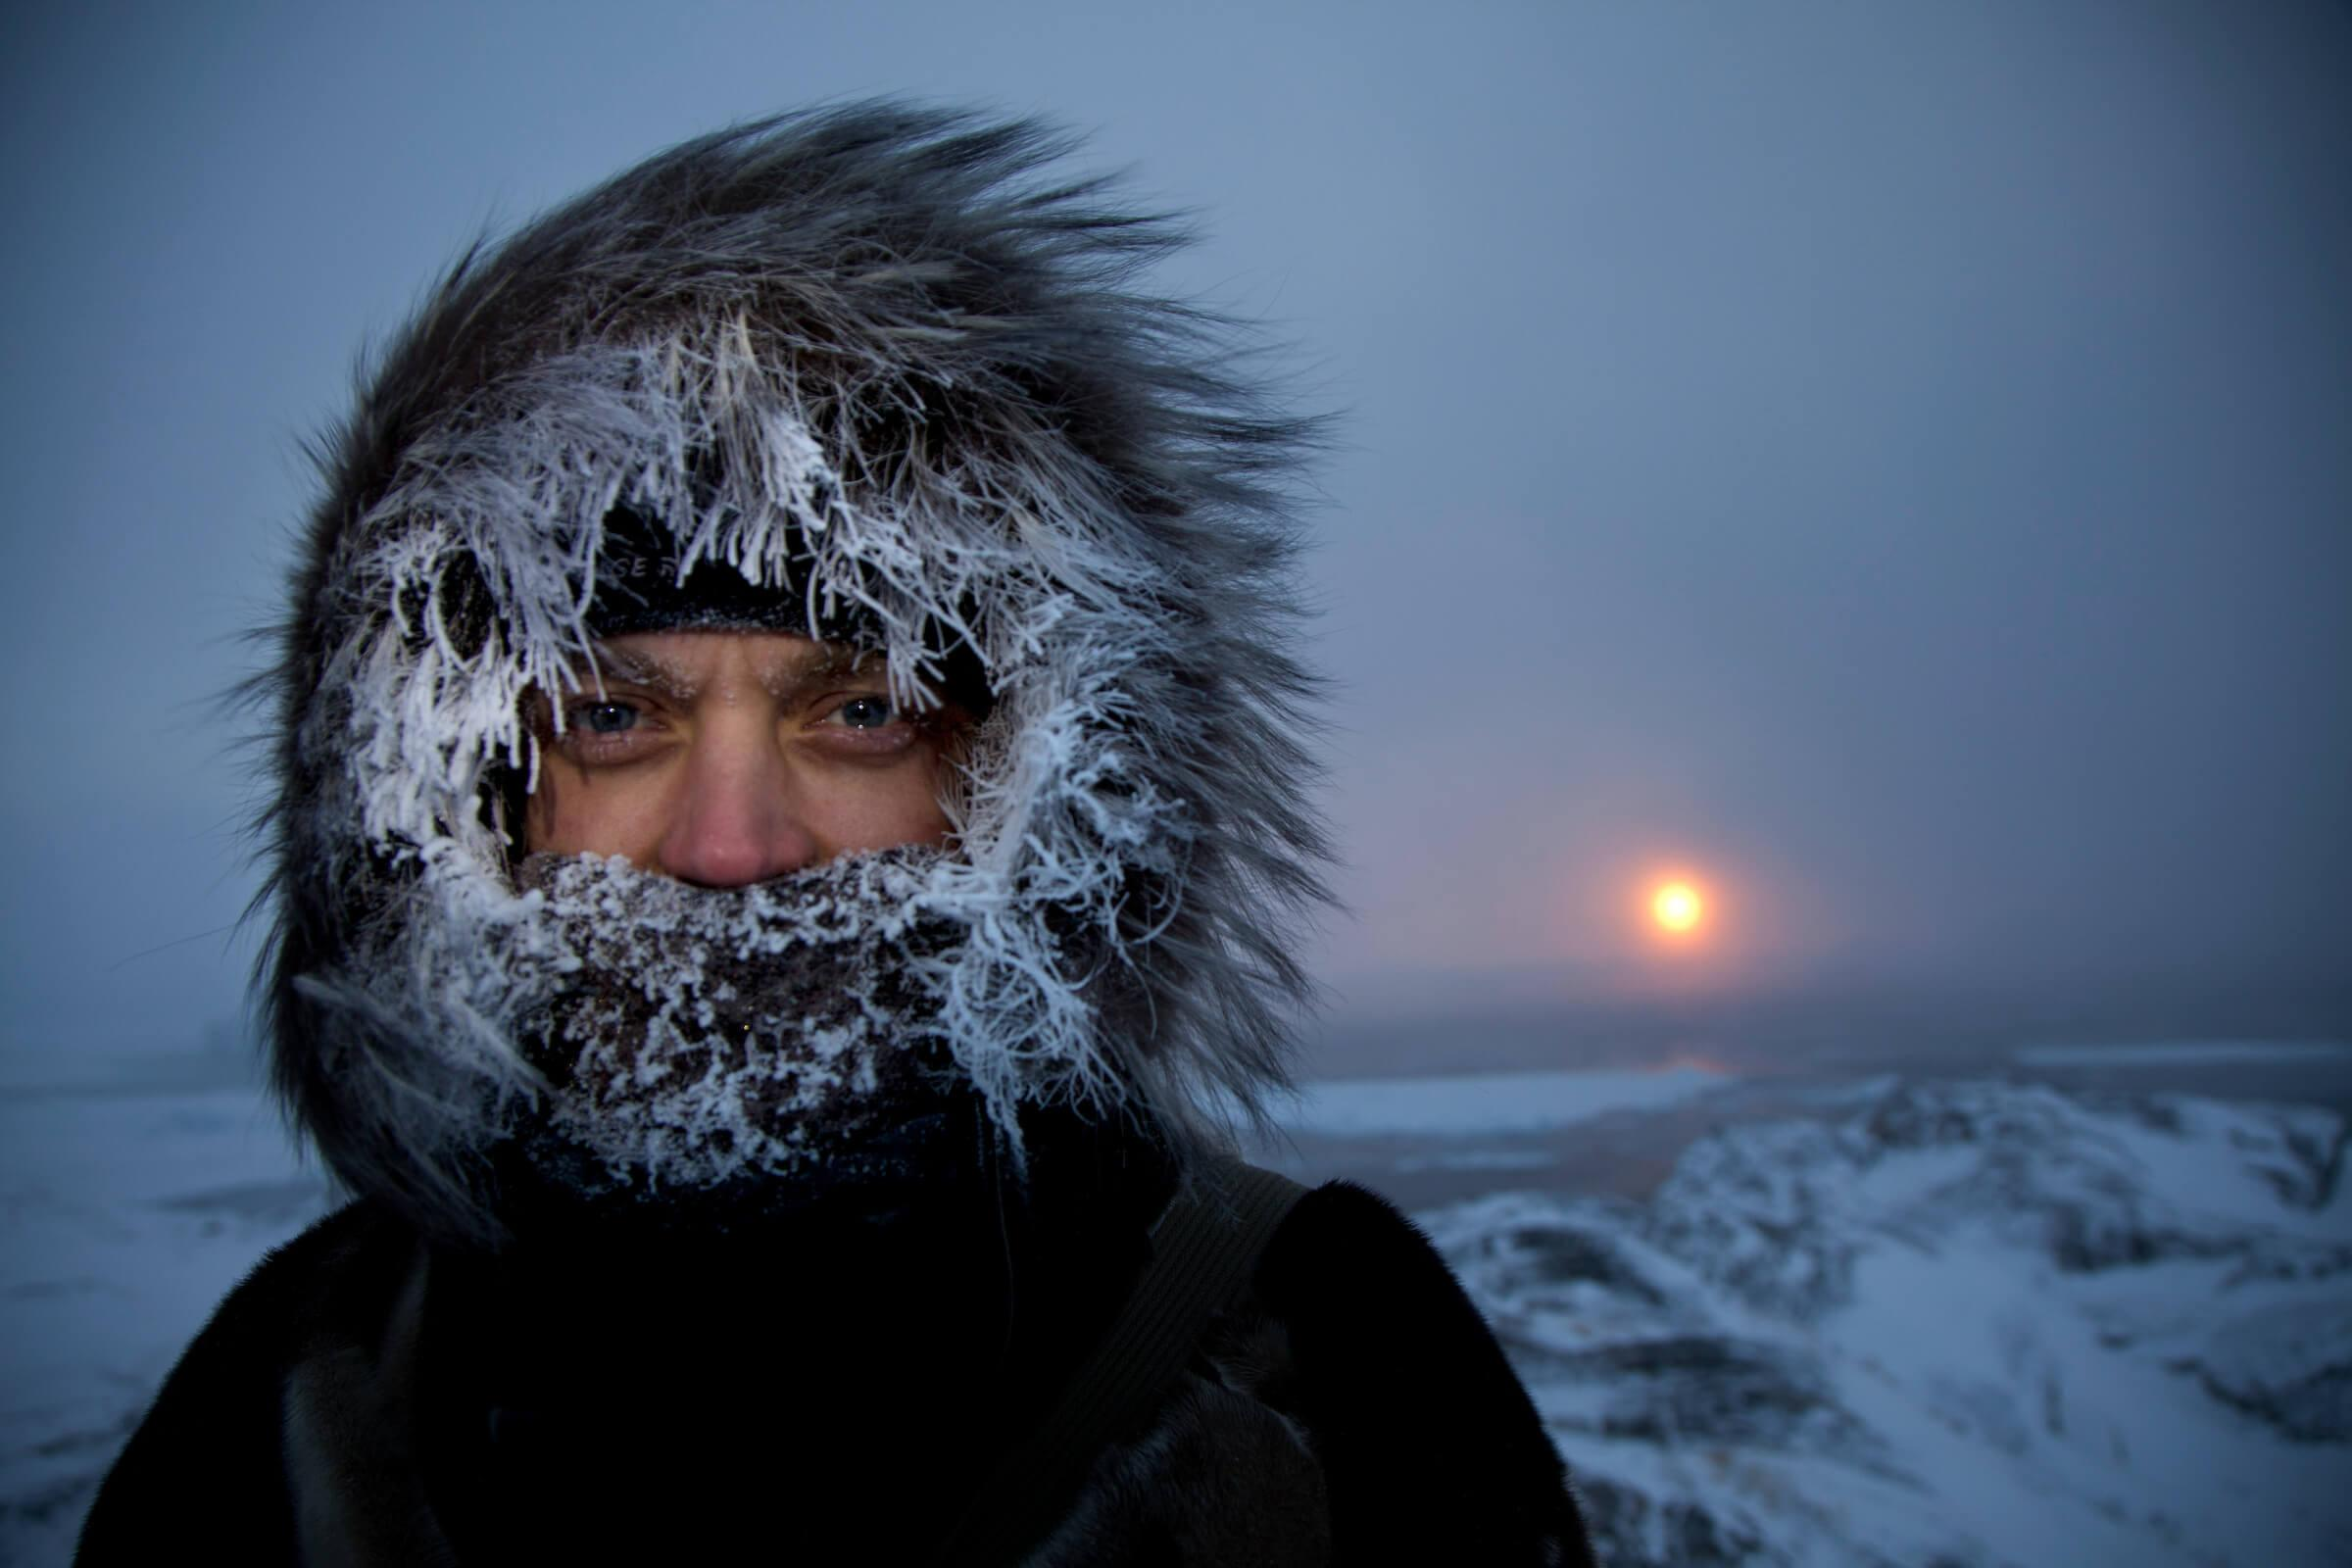 A midwinter portrait near the Ilulissat Ice Fjord in Greenland with the sun setting in the background